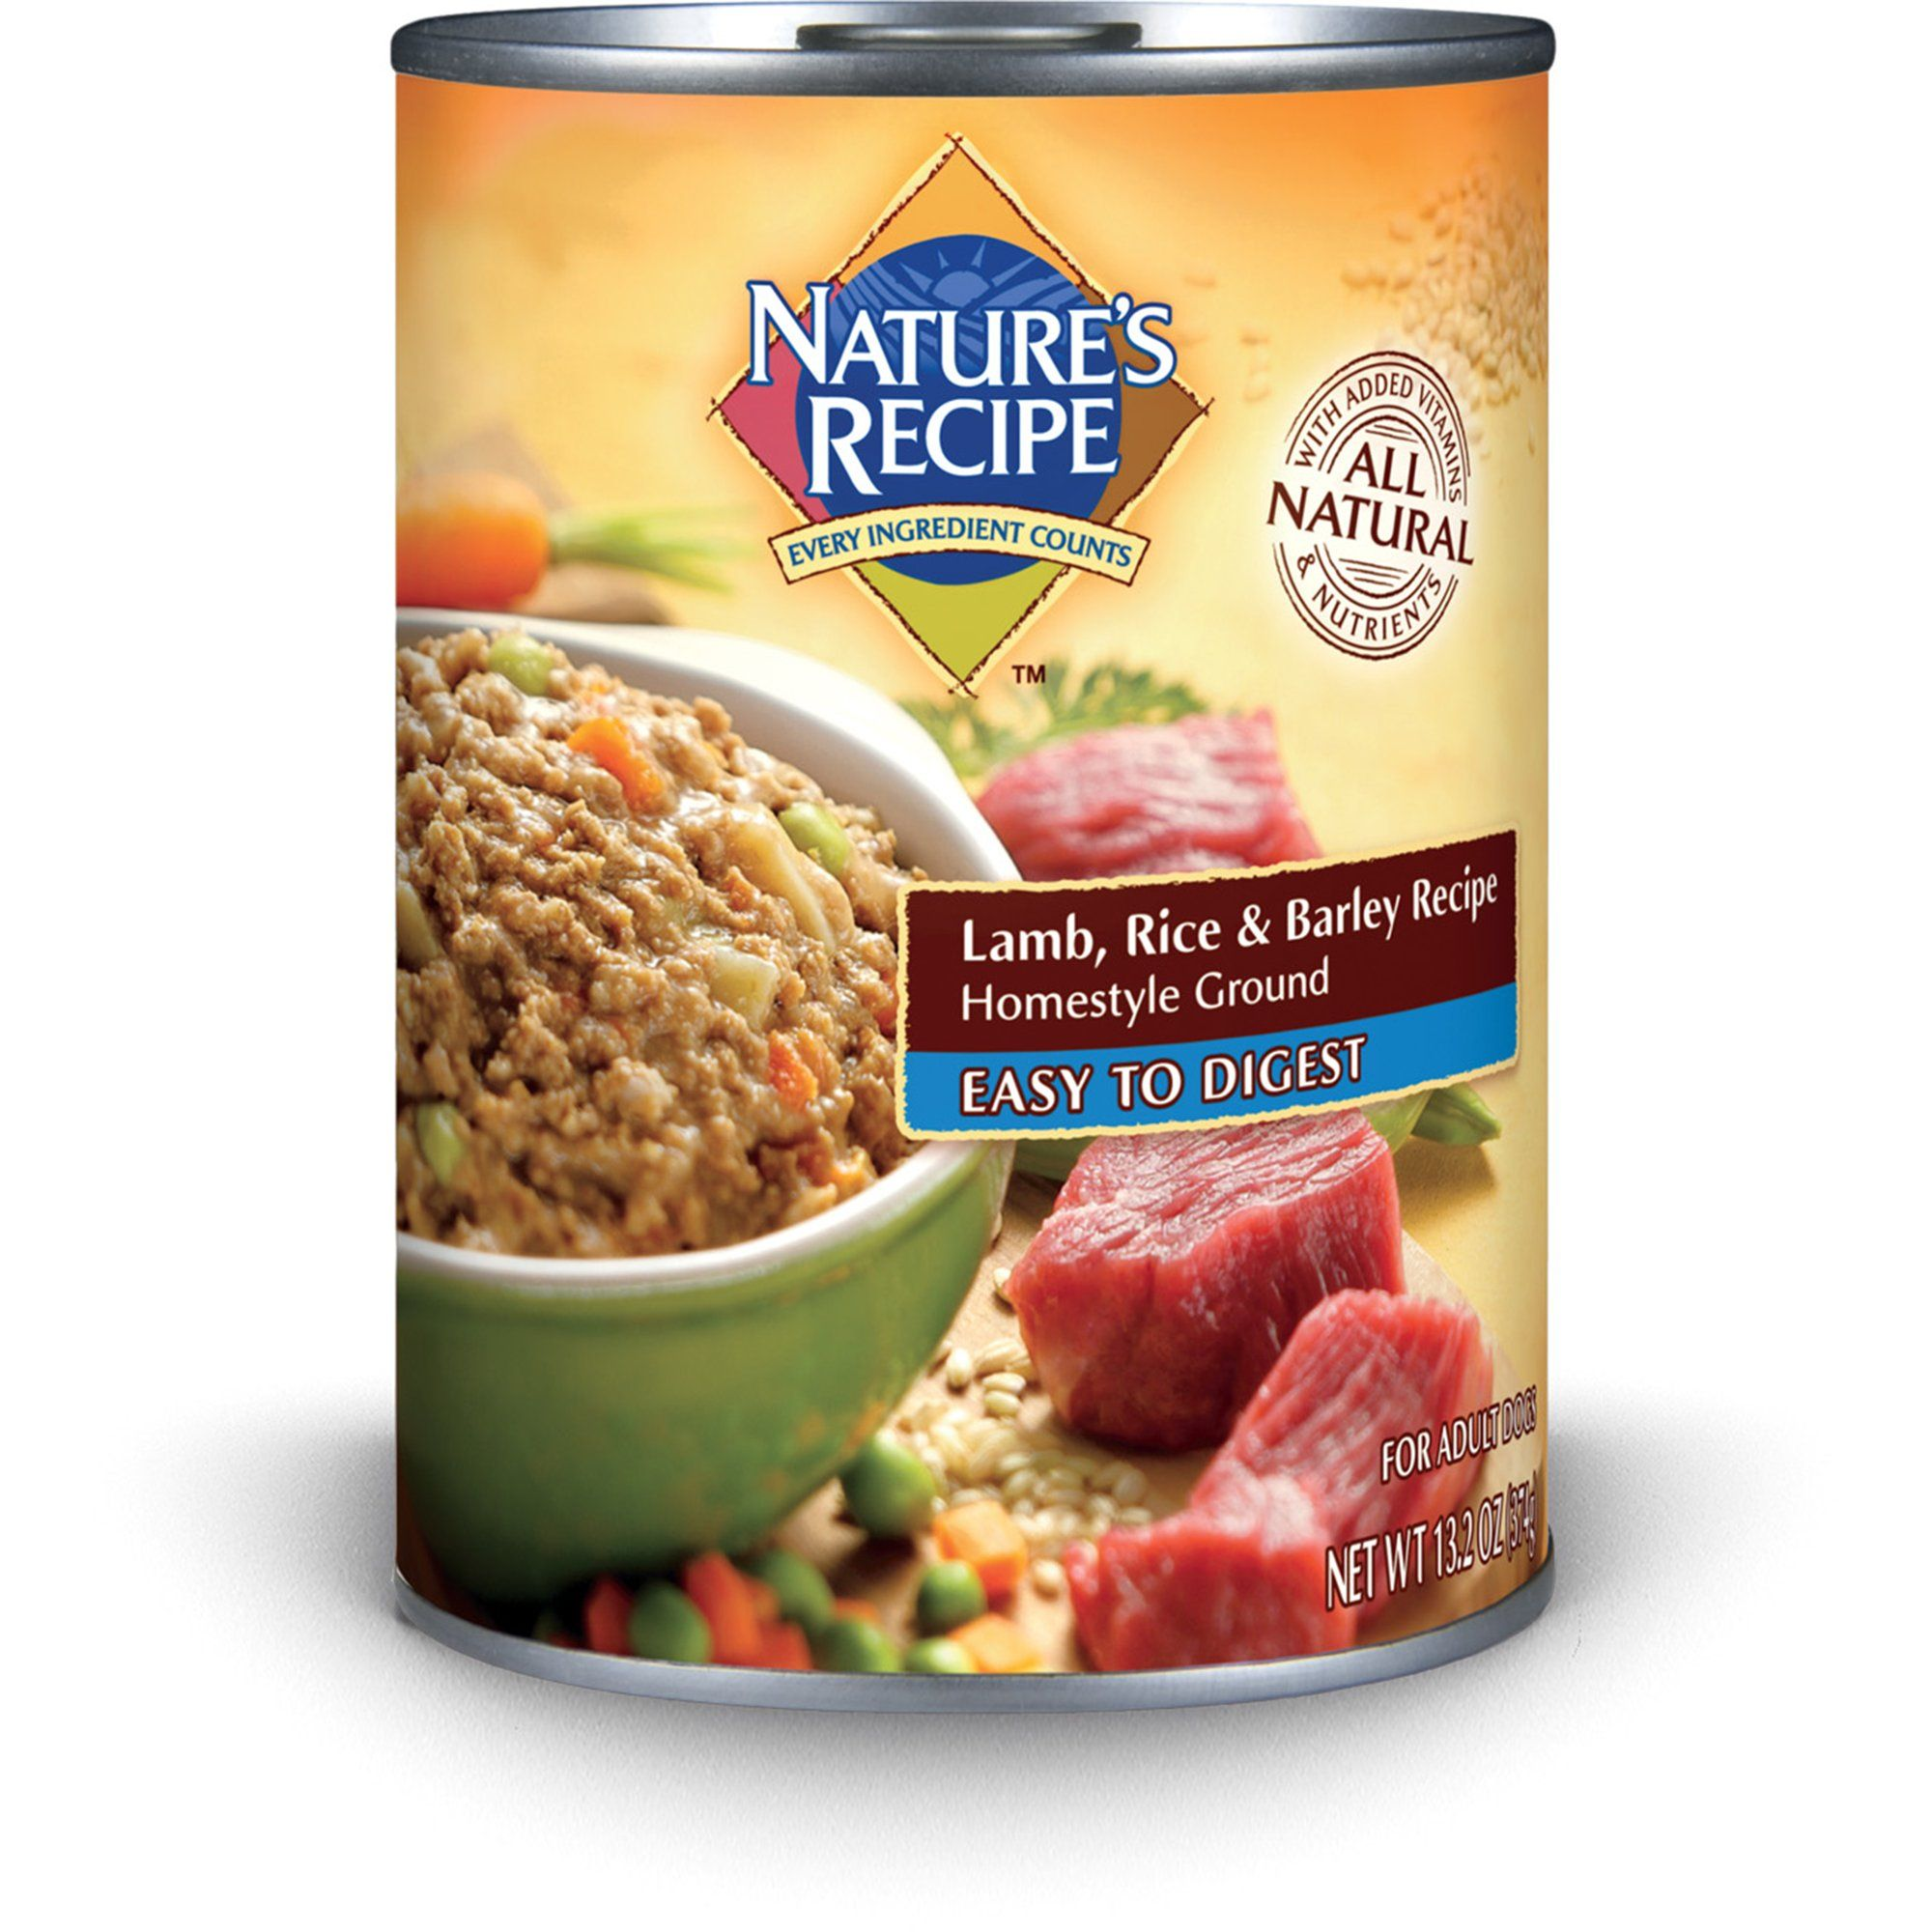 Nature S Recipe Easy To Digest Lamb Rice Barley Formula Canned Dog Food 13 2 Oz Case Of 12 Petco In 2021 Healthy Dog Food Recipes Dog Food Recipes Food